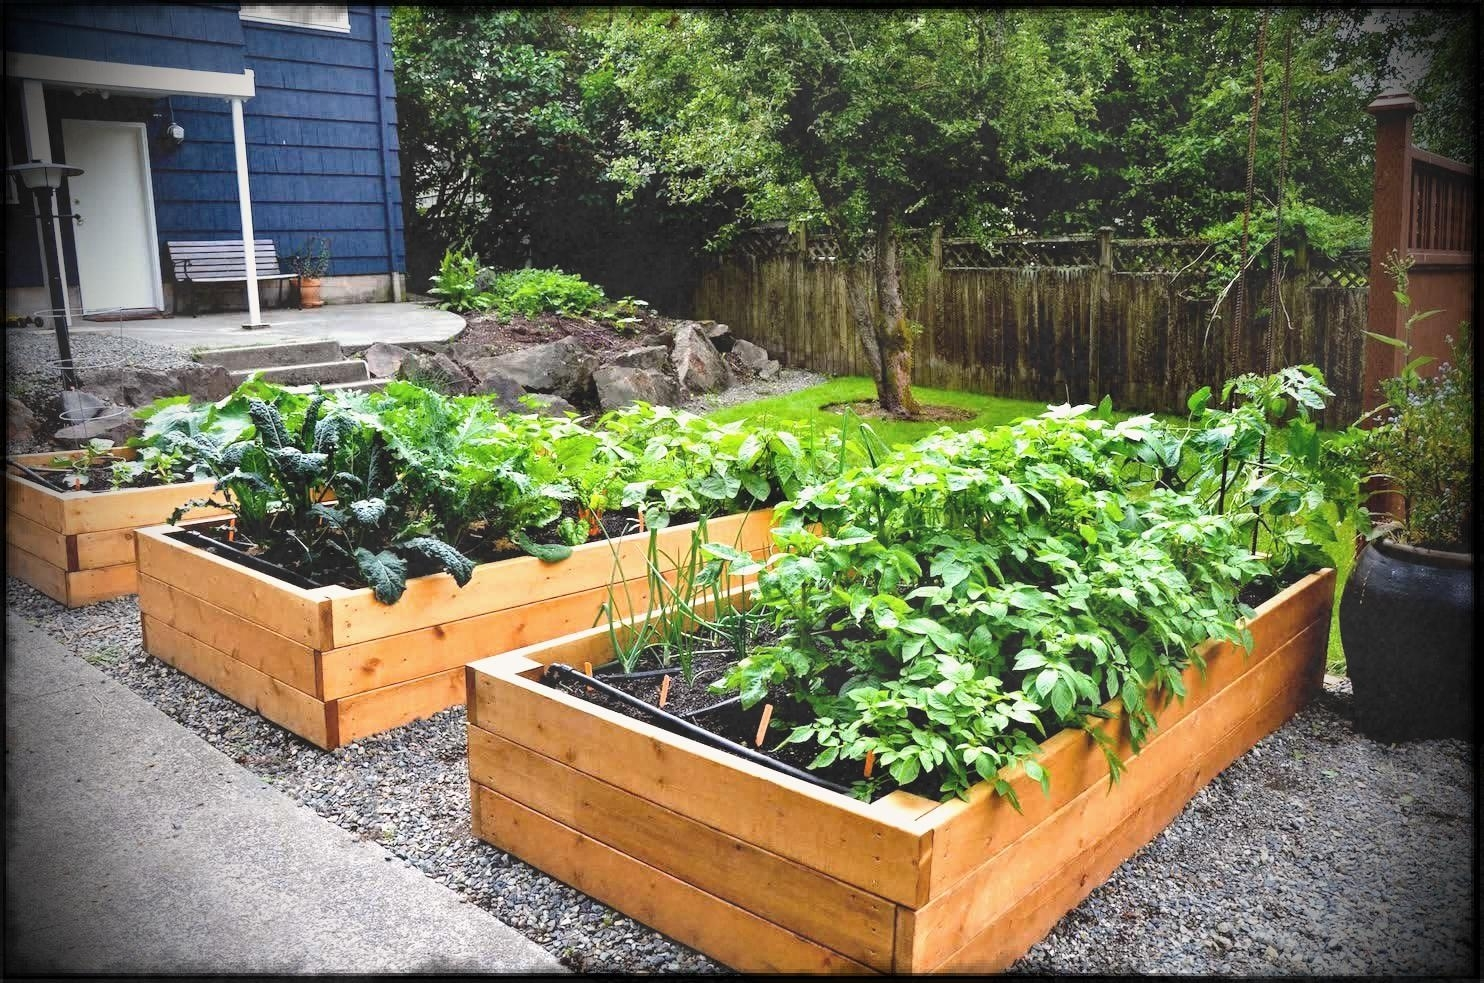 Backyard Container Vegetable Garden Ideas - Garden Design